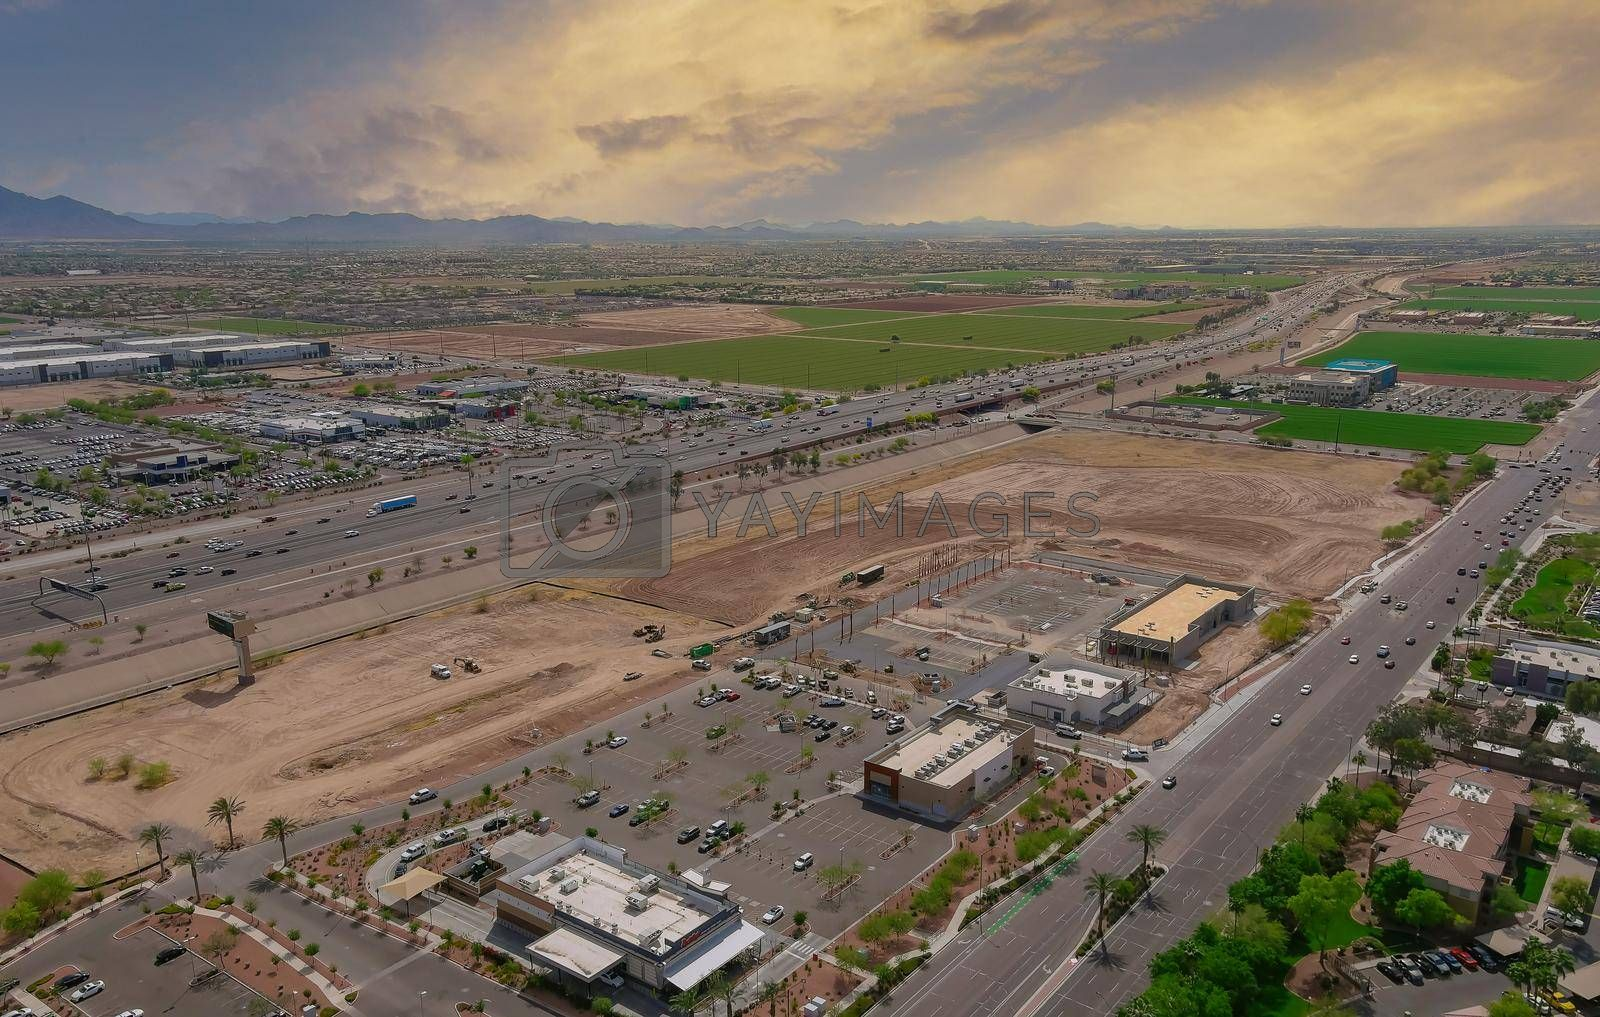 Aerial view shopping district center and parking lot in Avondale small town major road highway view overlooking desert near on state capital Phoenix Arizona USA.